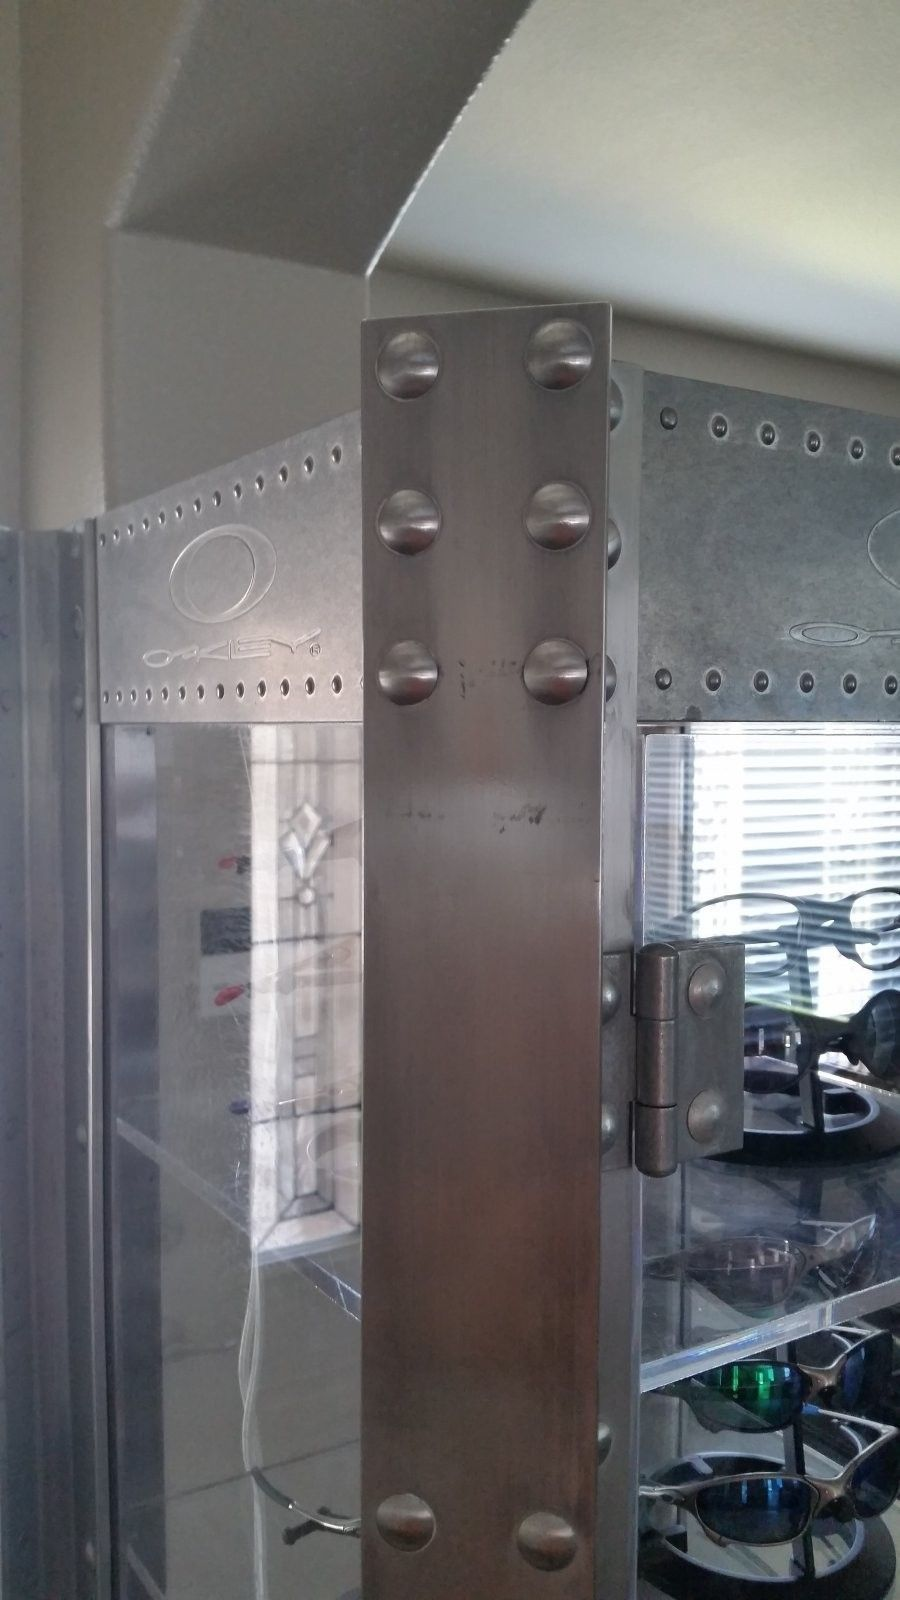 Aluminum Display Case - Polish Product Review - 20140906_131204.jpg